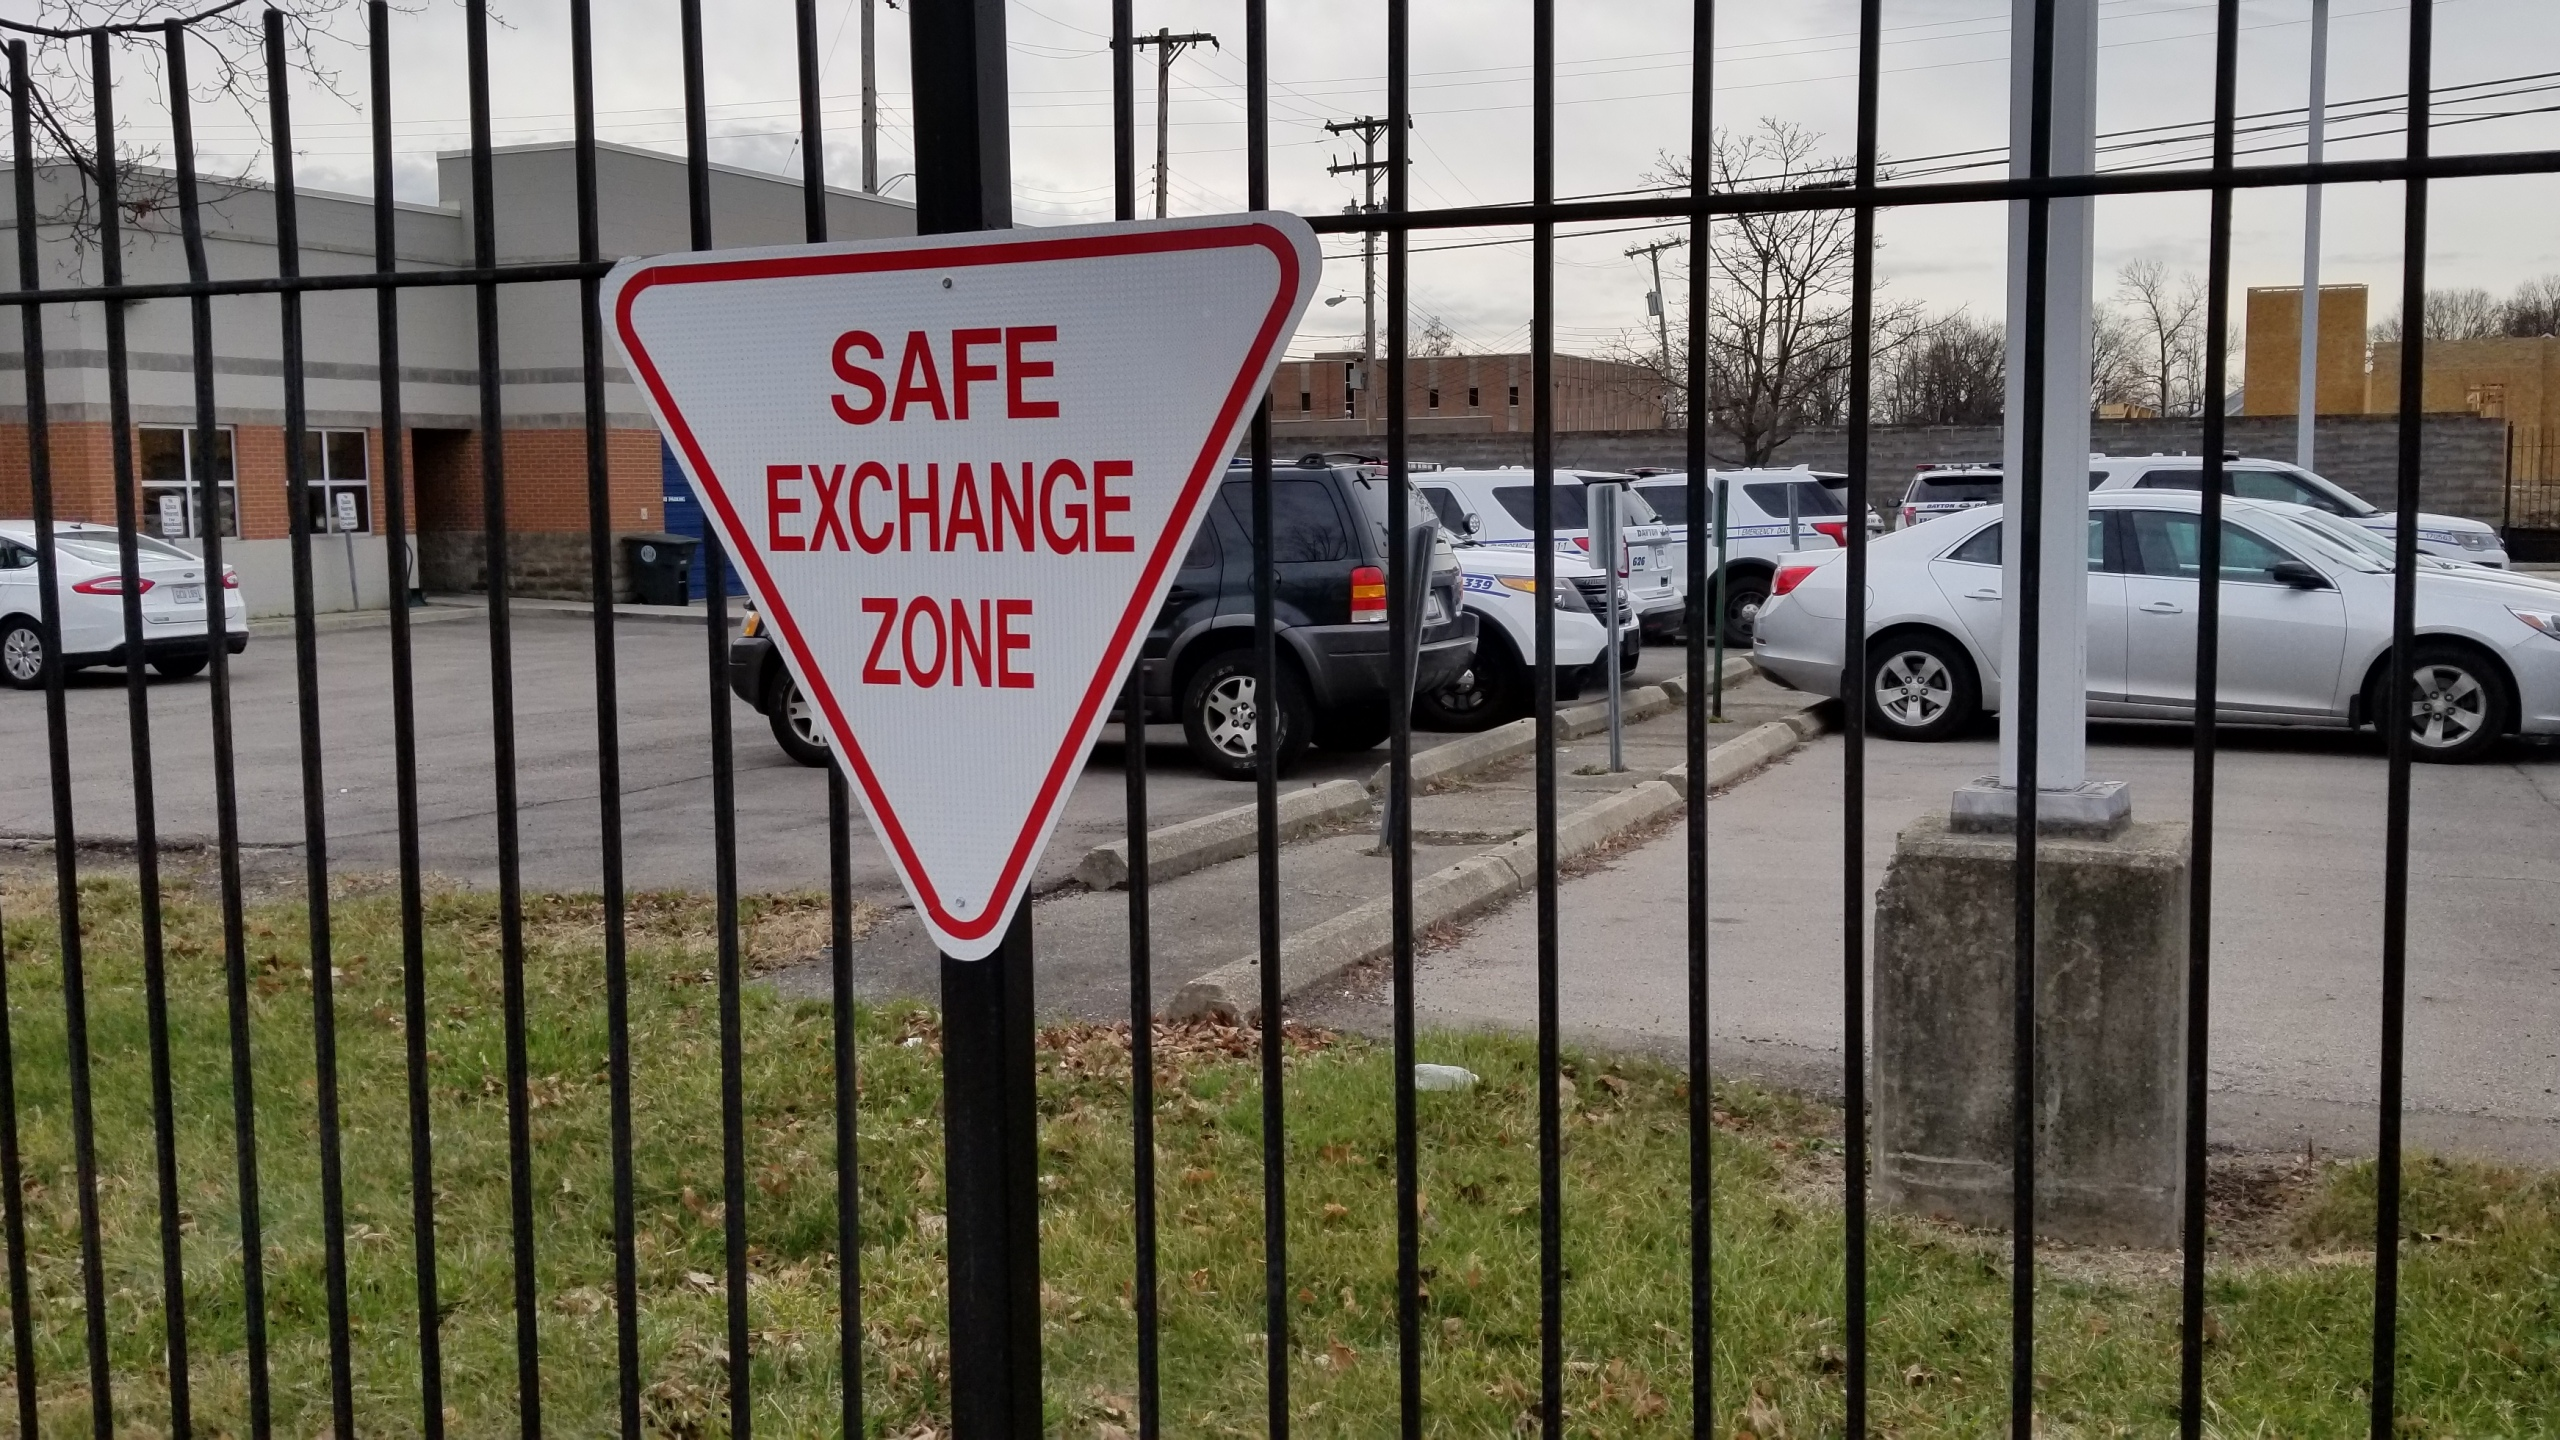 Police urge the public to use safe exchange zones